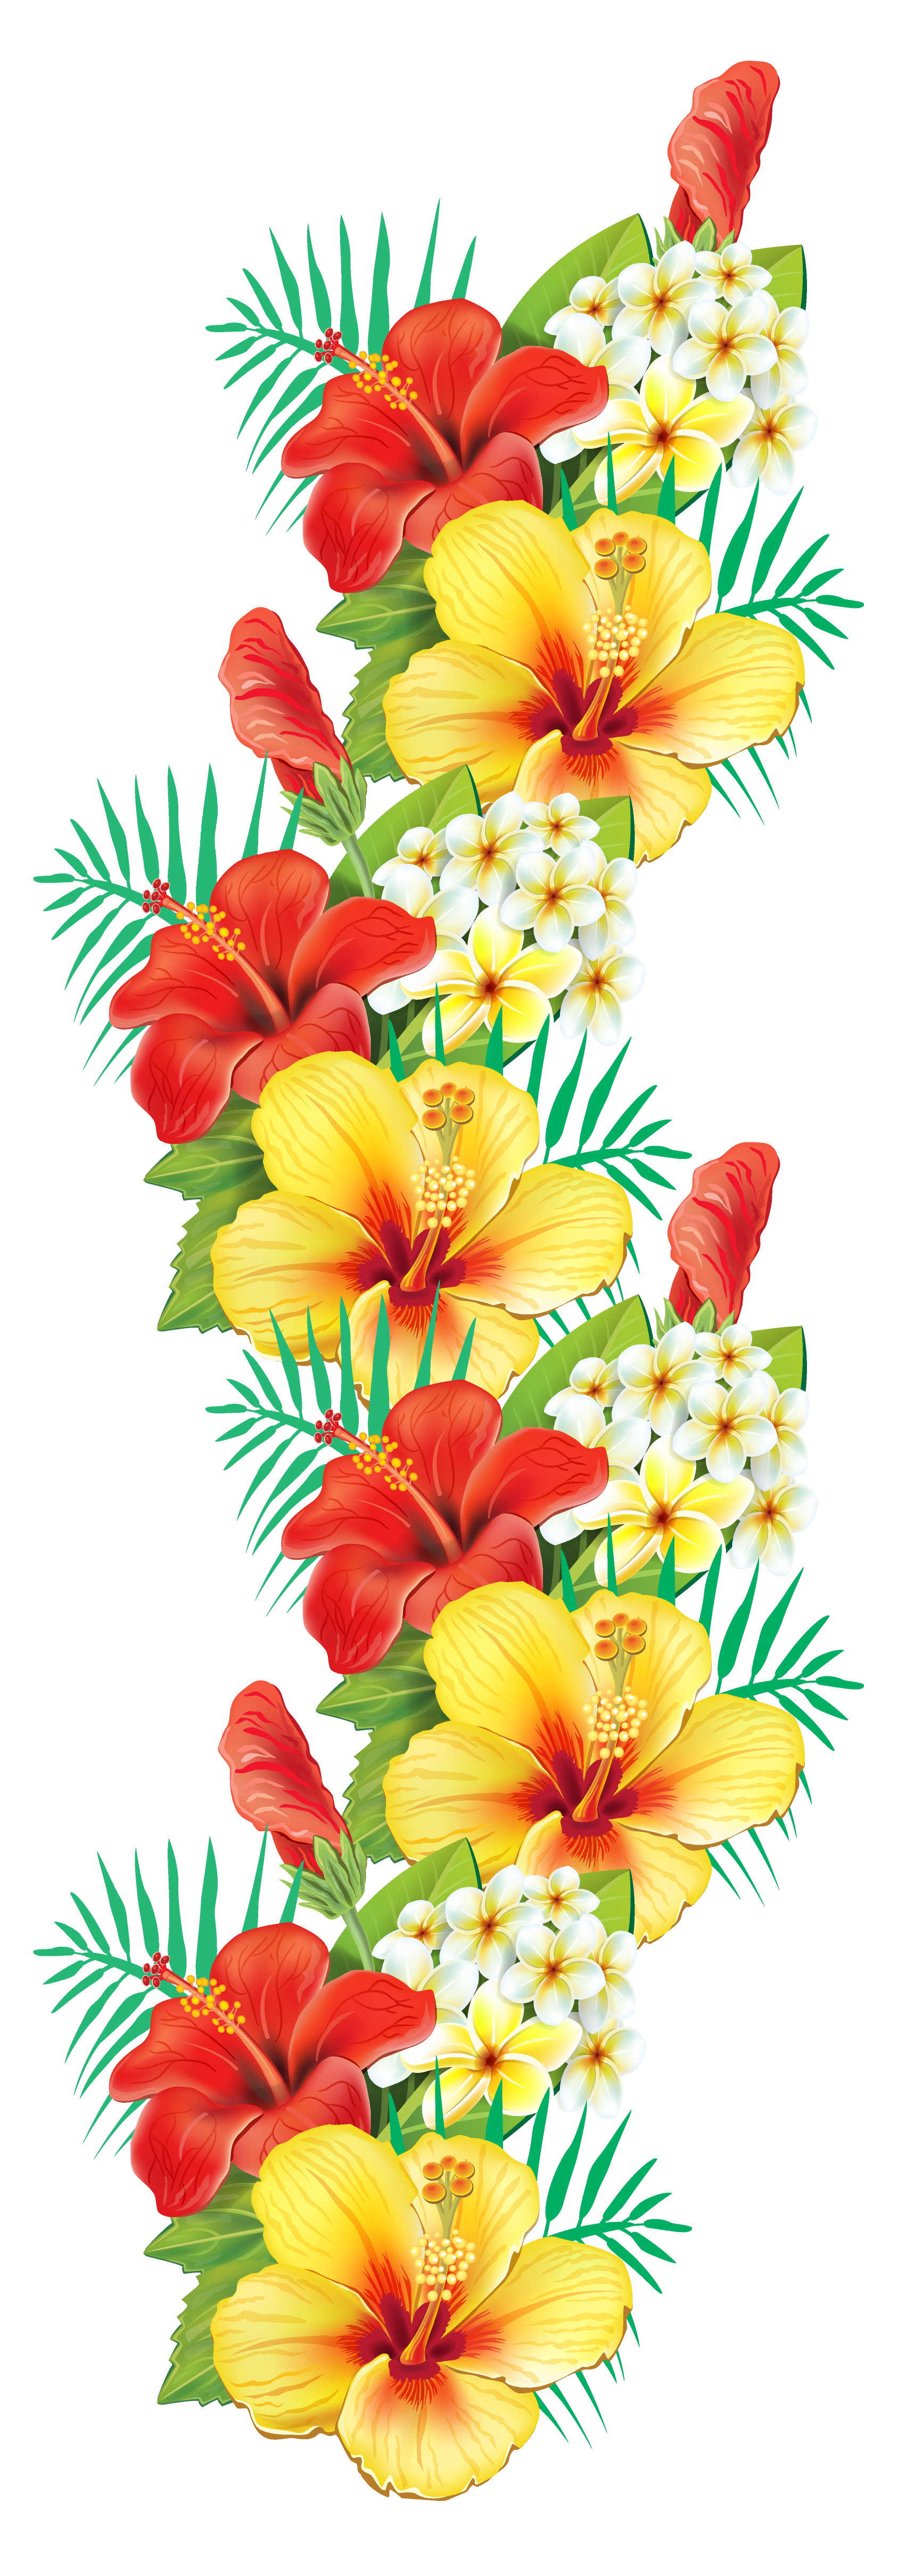 Tropical flower border png. Exotic flowers decor clipart